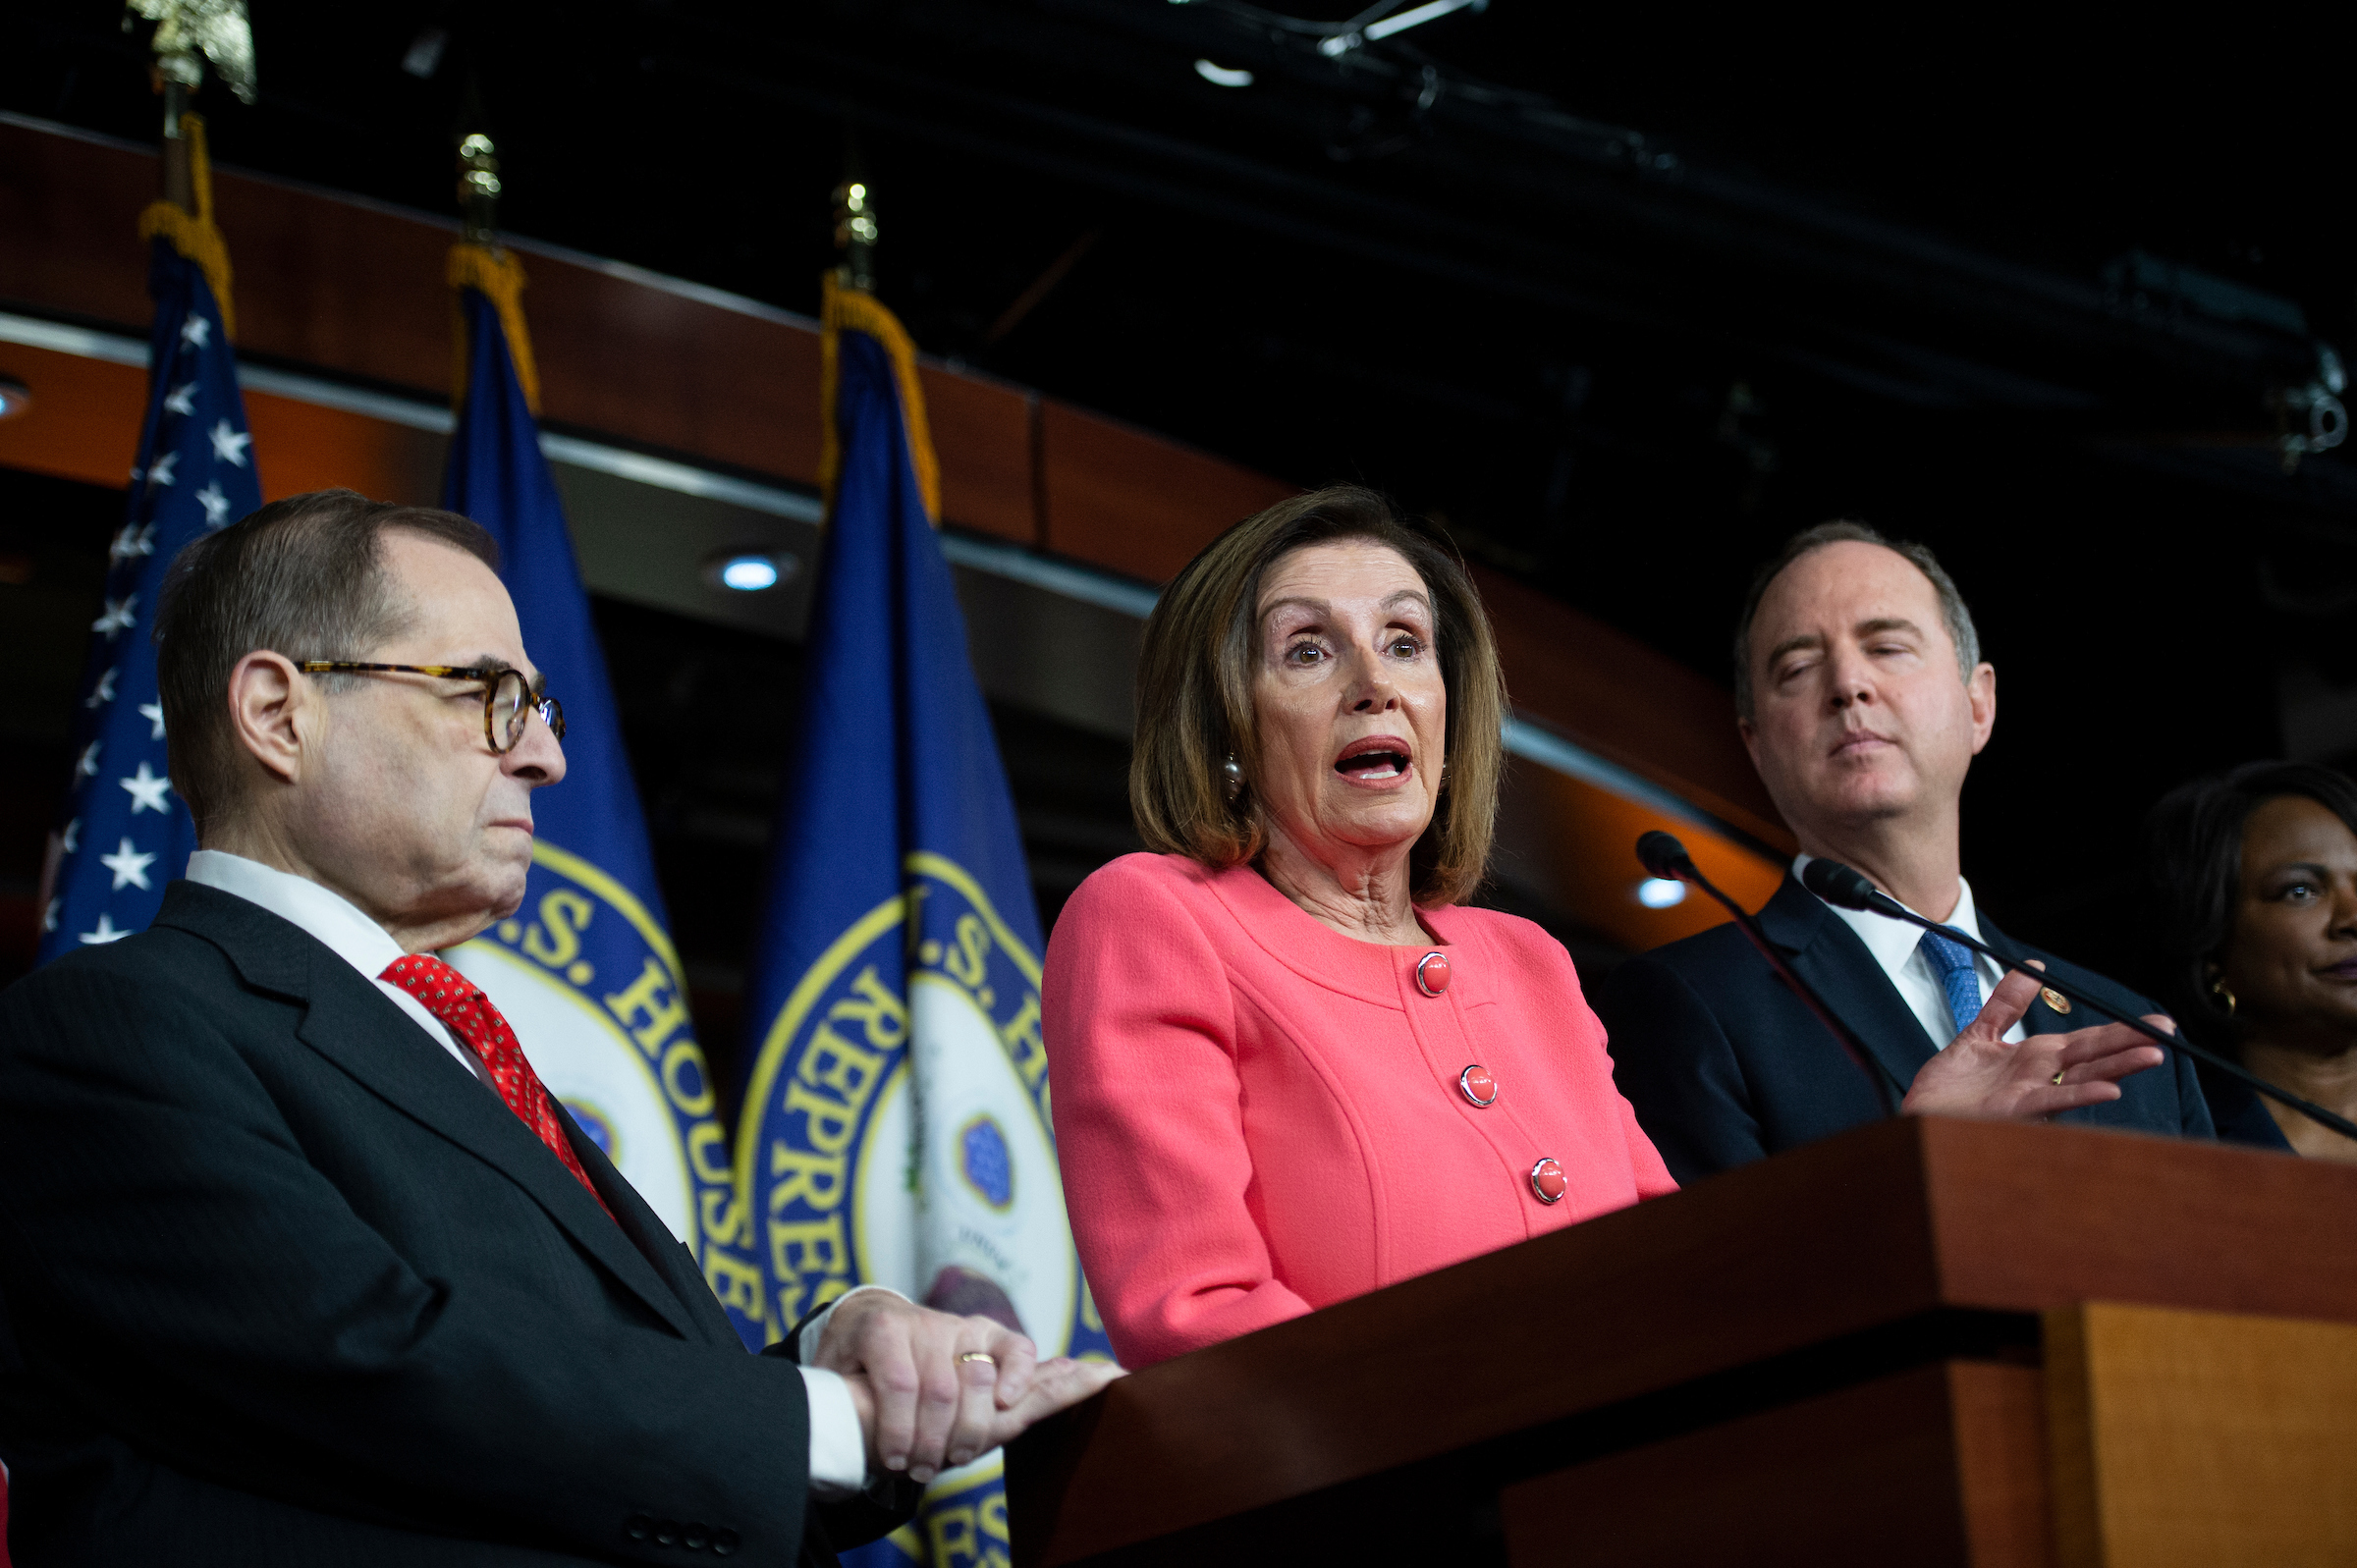 can speaker of the house be impeached